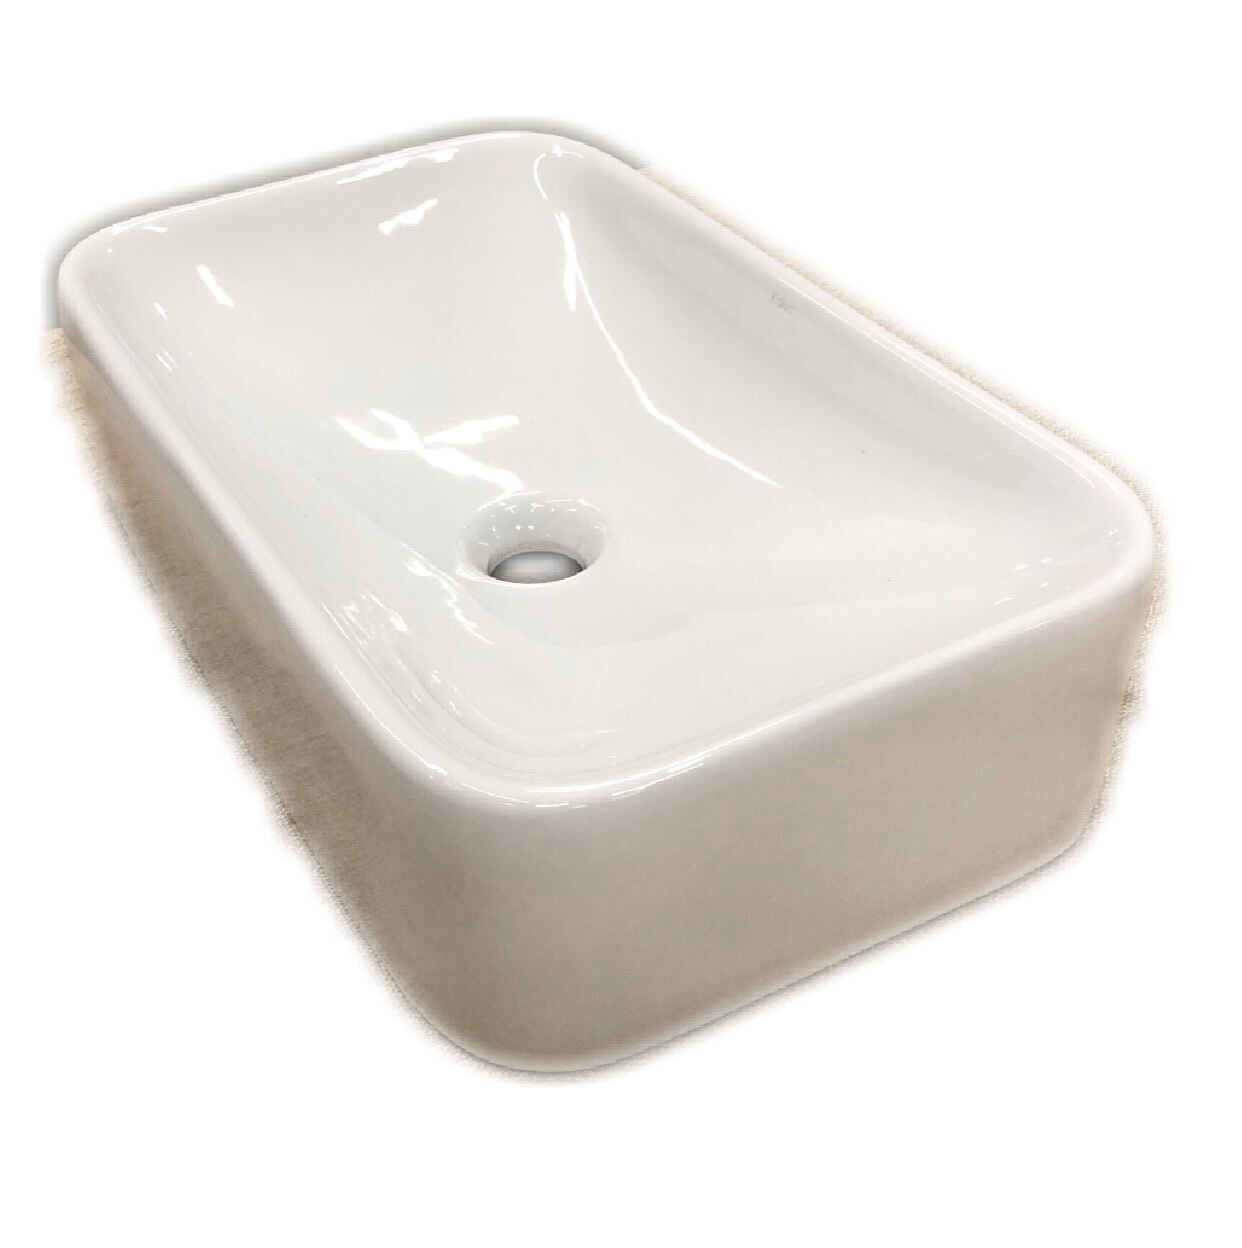 Kraus White Rectangular Ceramic Sink – KCV-122